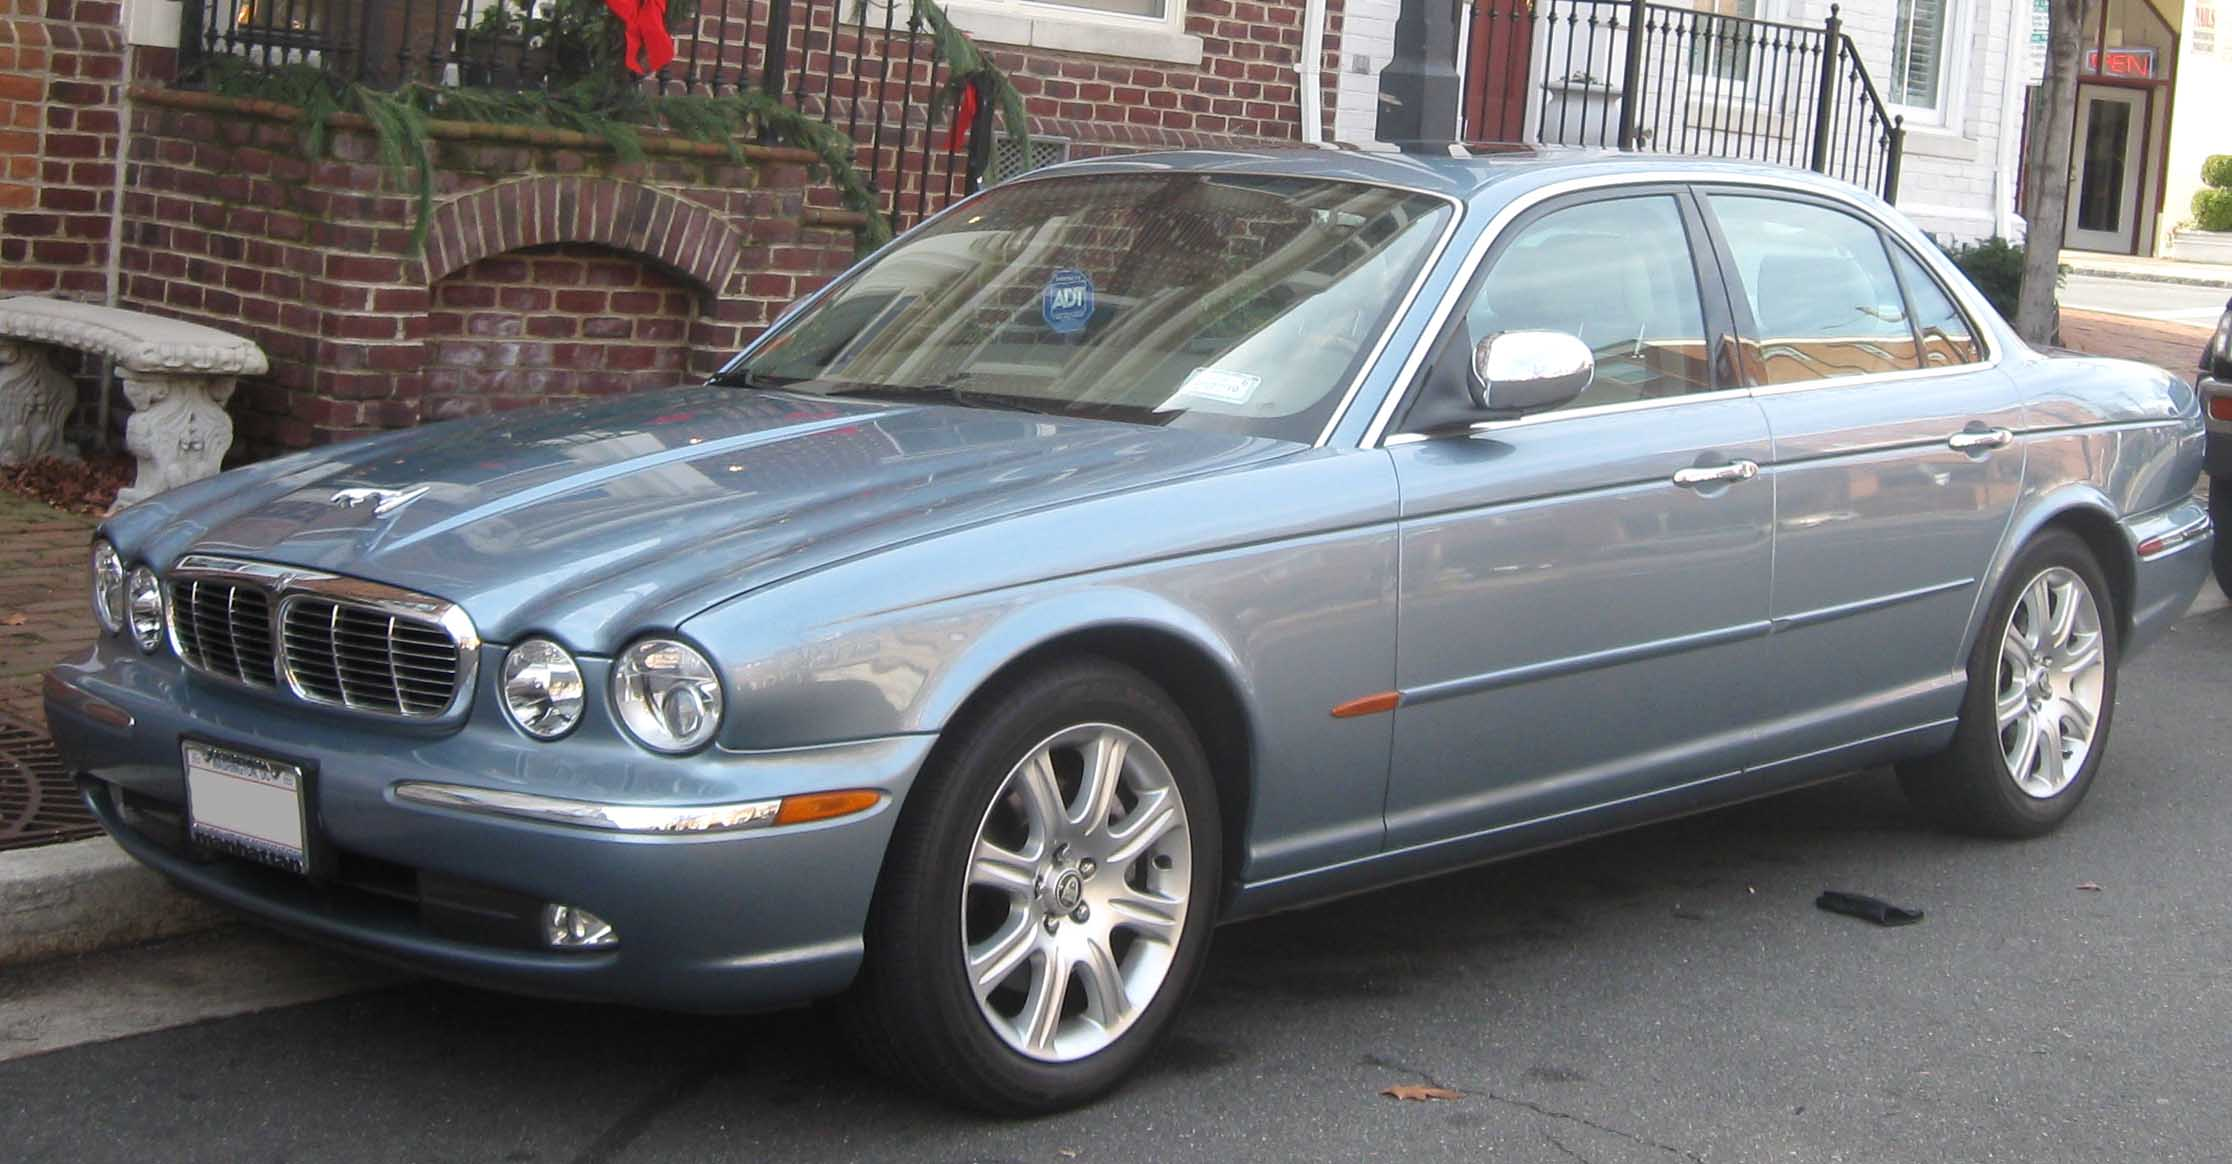 2006 Jaguar Xj-series #8